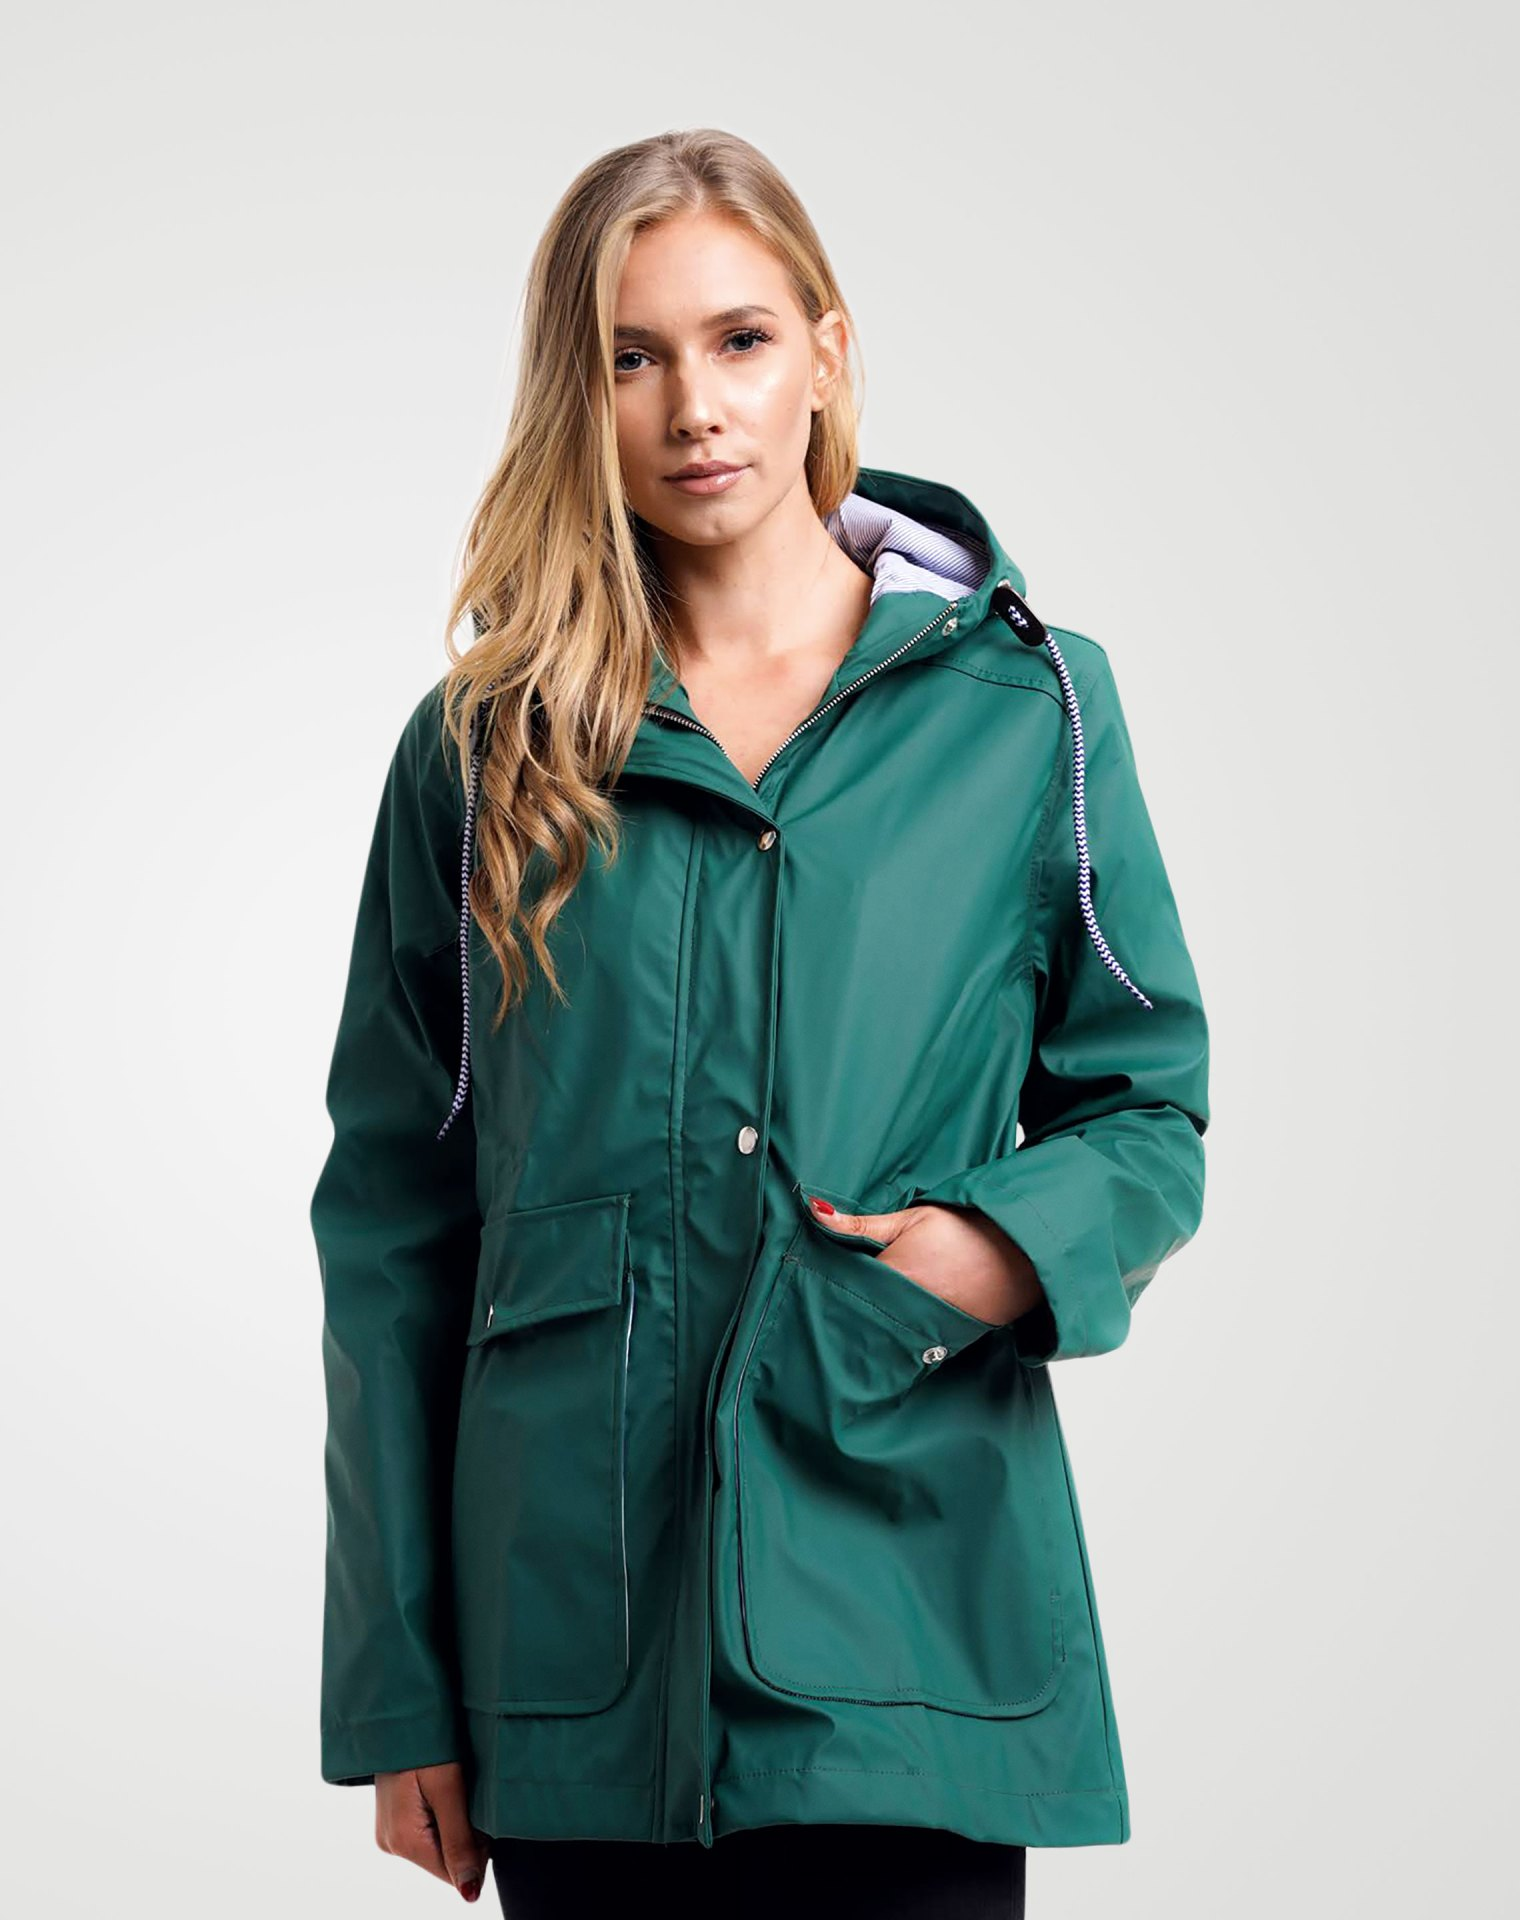 Image 4 of Womens Hooded Raincoat Jacket color Green and sizes 8,10,12,14 from Noroze